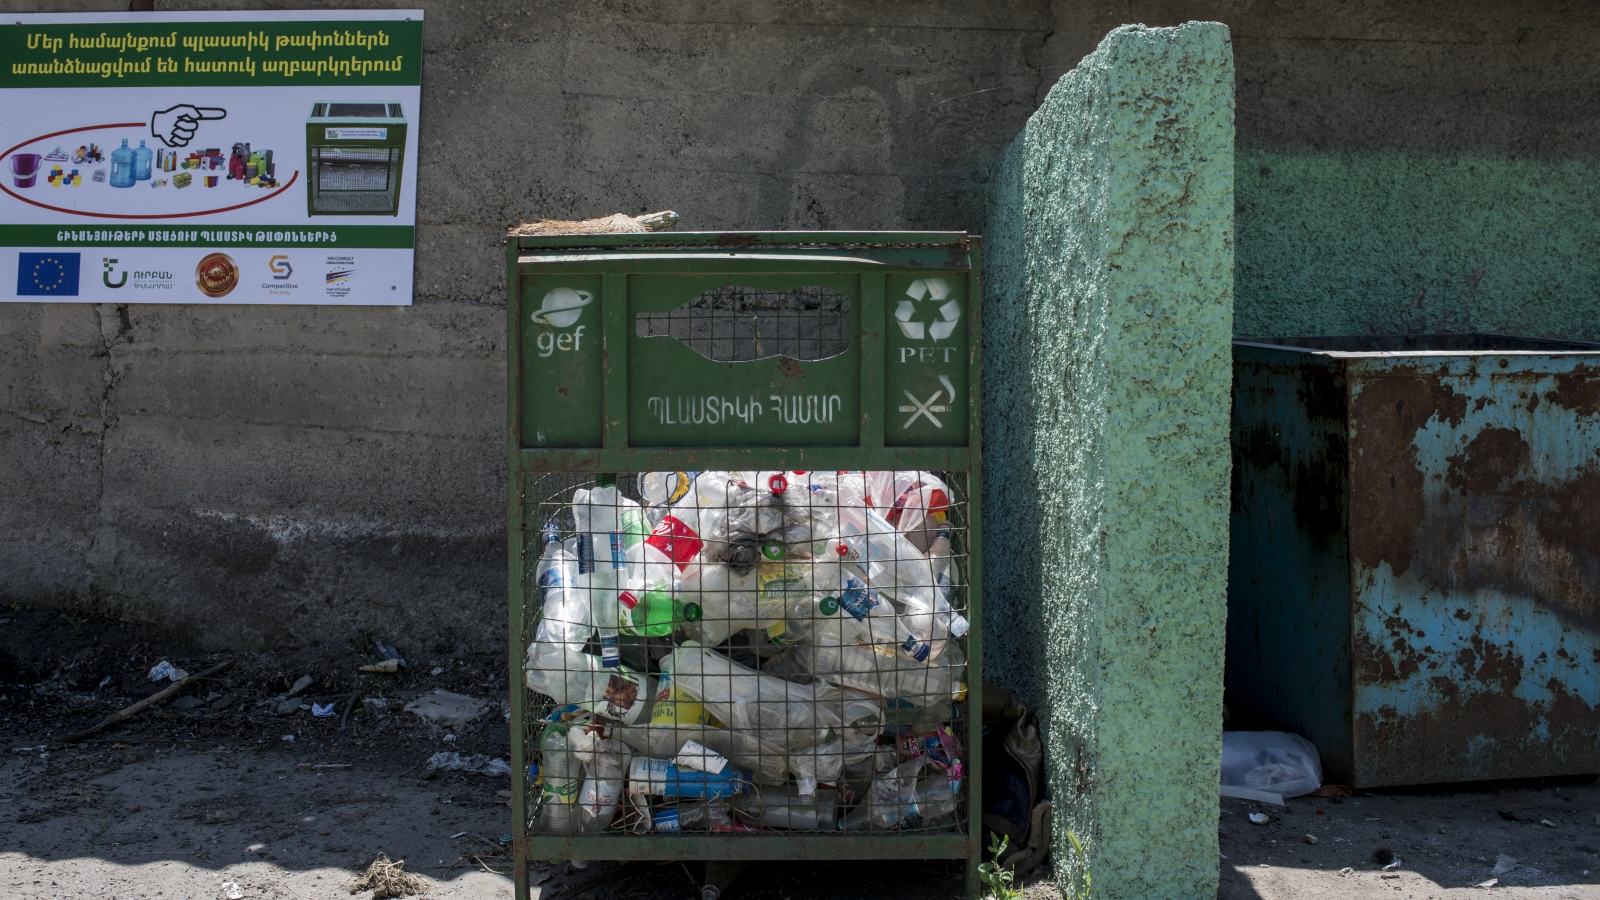 Trash bins for plastic bottles in the city of Kapan (May, 2018)